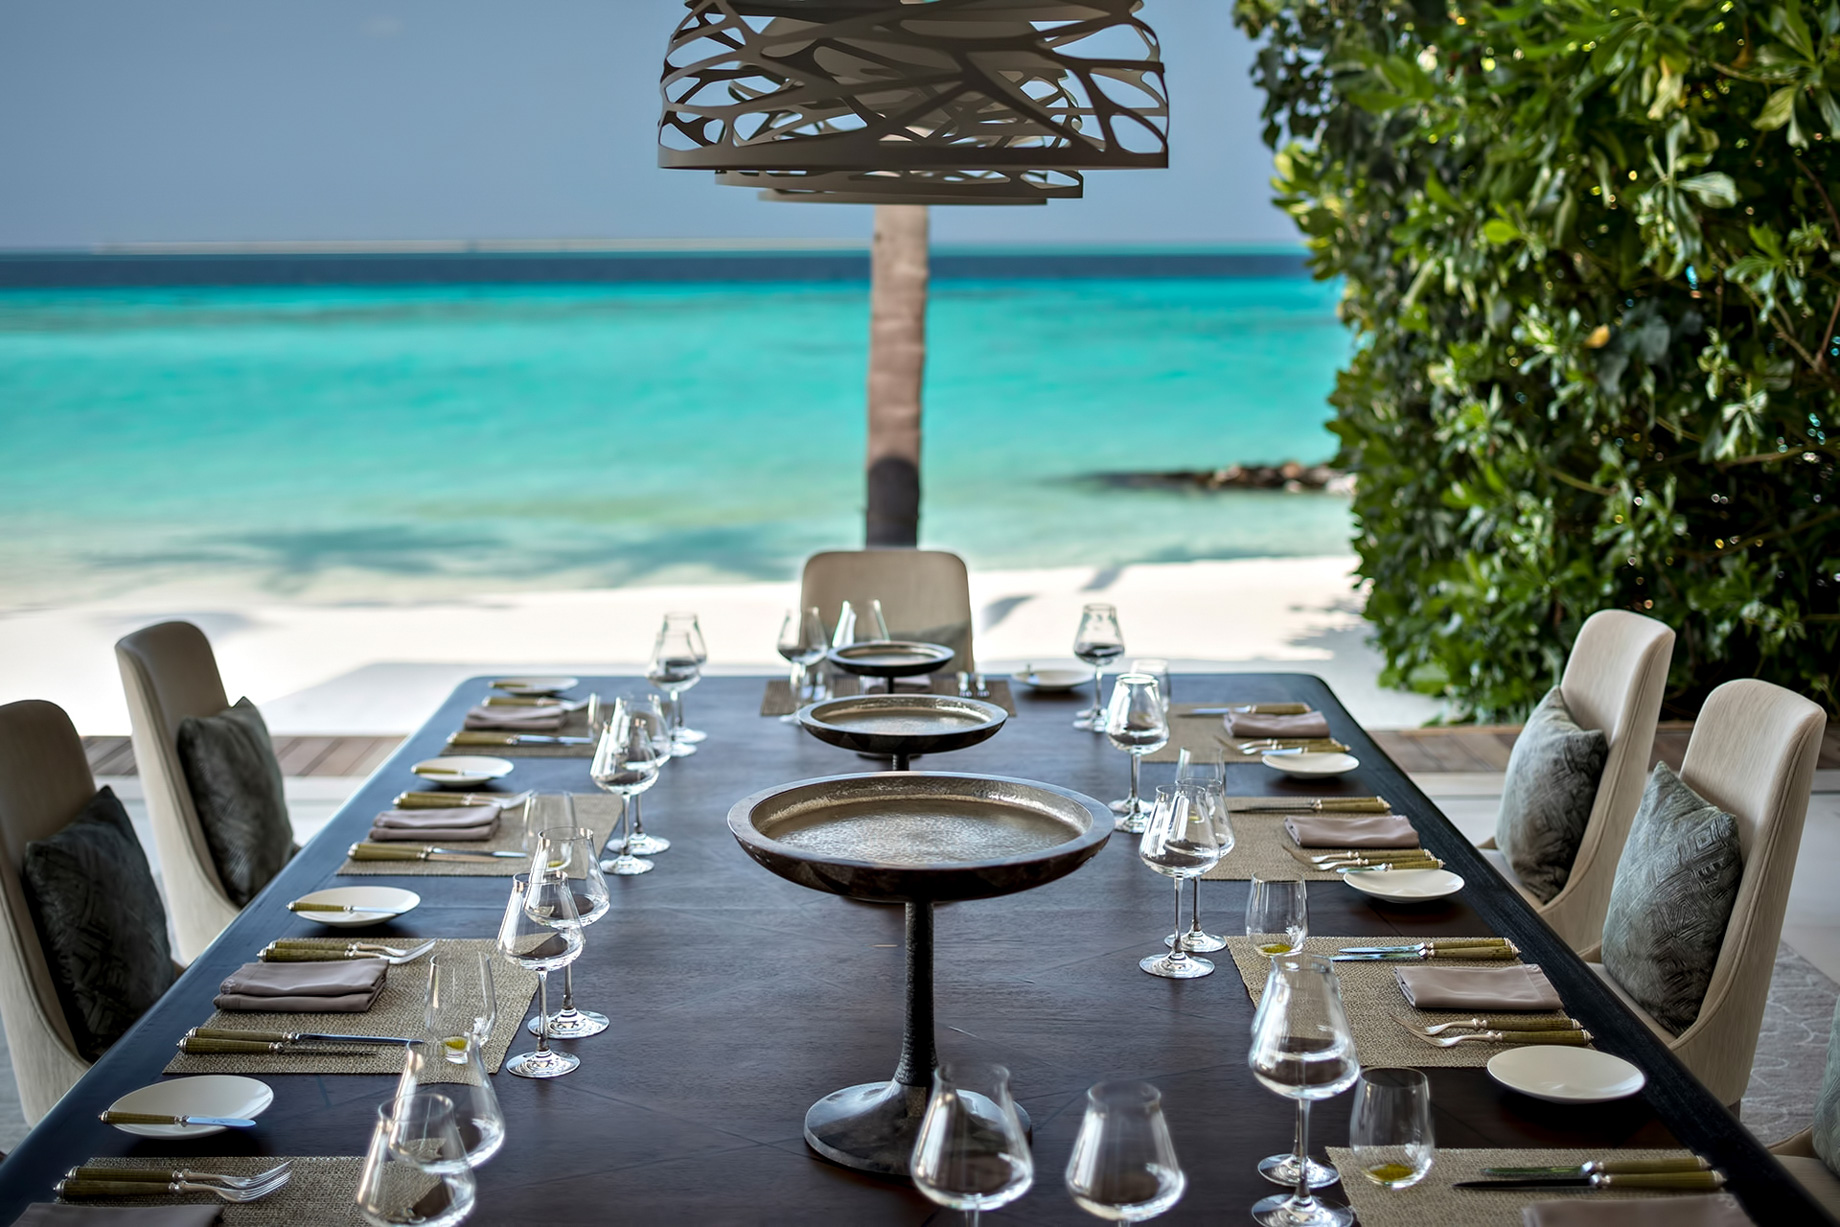 Cheval Blanc Randheli Luxury Resort - Noonu Atoll, Maldives - Exclusive Private Island Villa Dining Table Ocean View